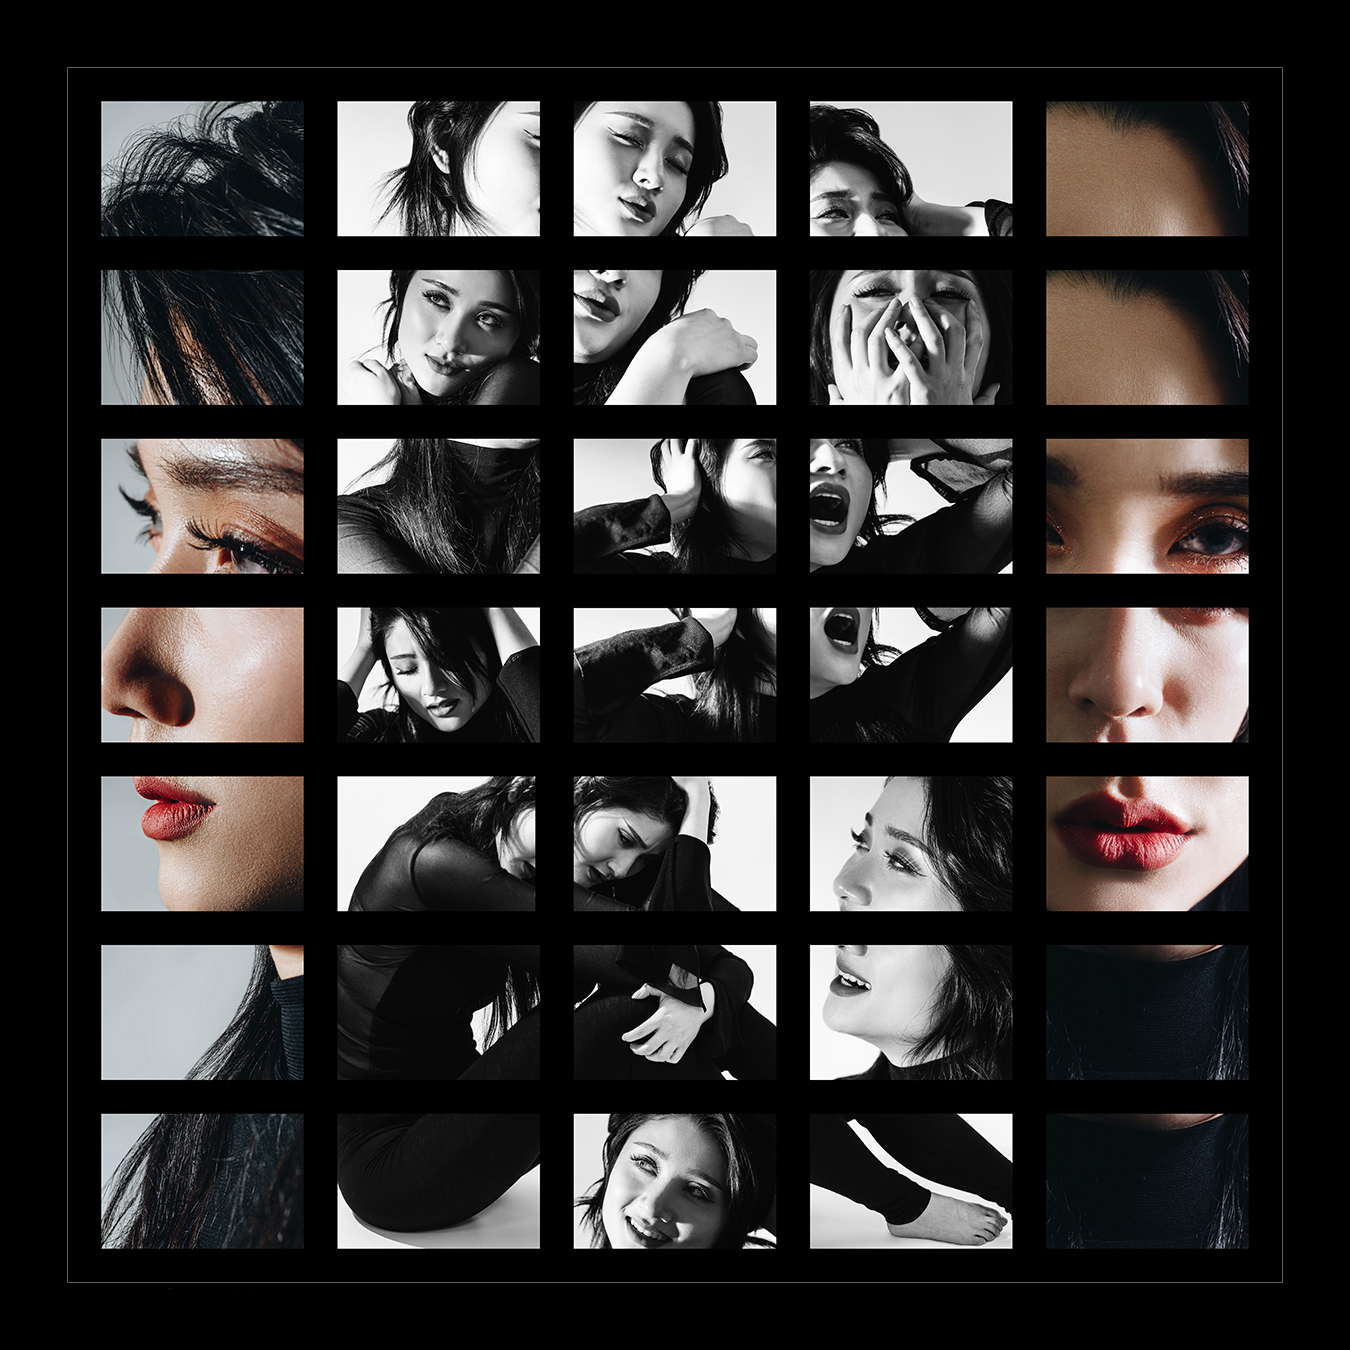 Wing_Hei_Emily_Cheng_Assignment_1_Sequential_Portrait_Emotions_Happiness_Sadness_Love_Despair_masks_